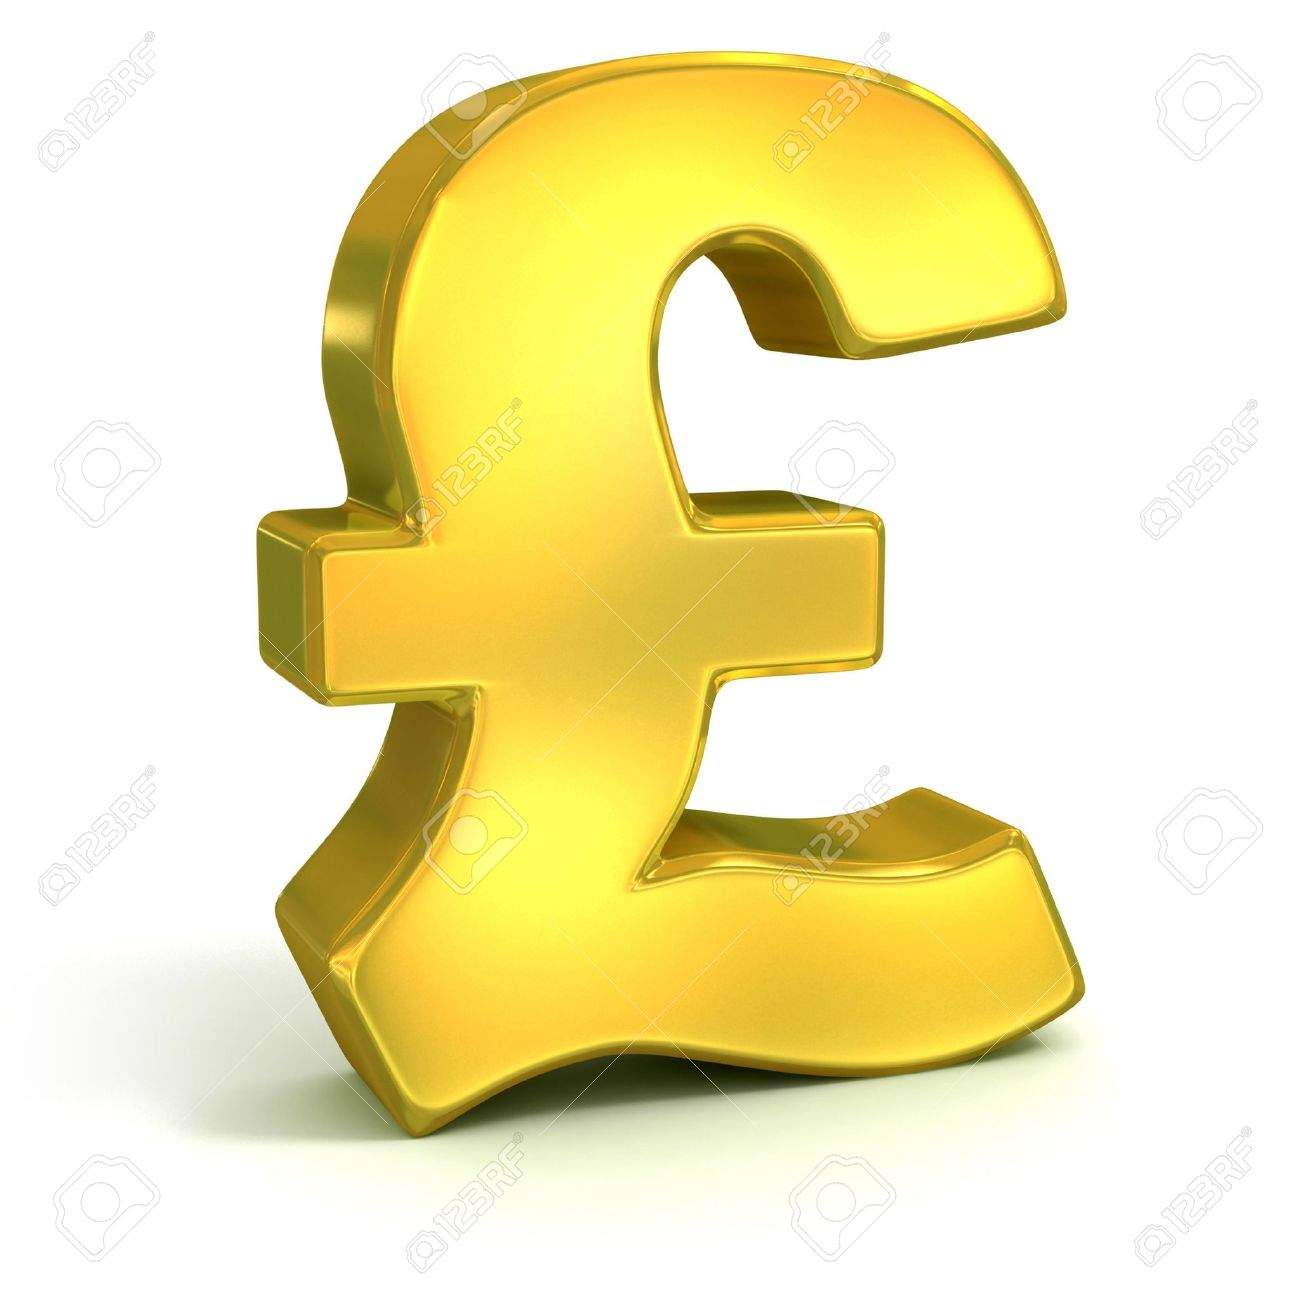 Pounds Sterling Symbol Image Collections Symbols And Meanings Chart